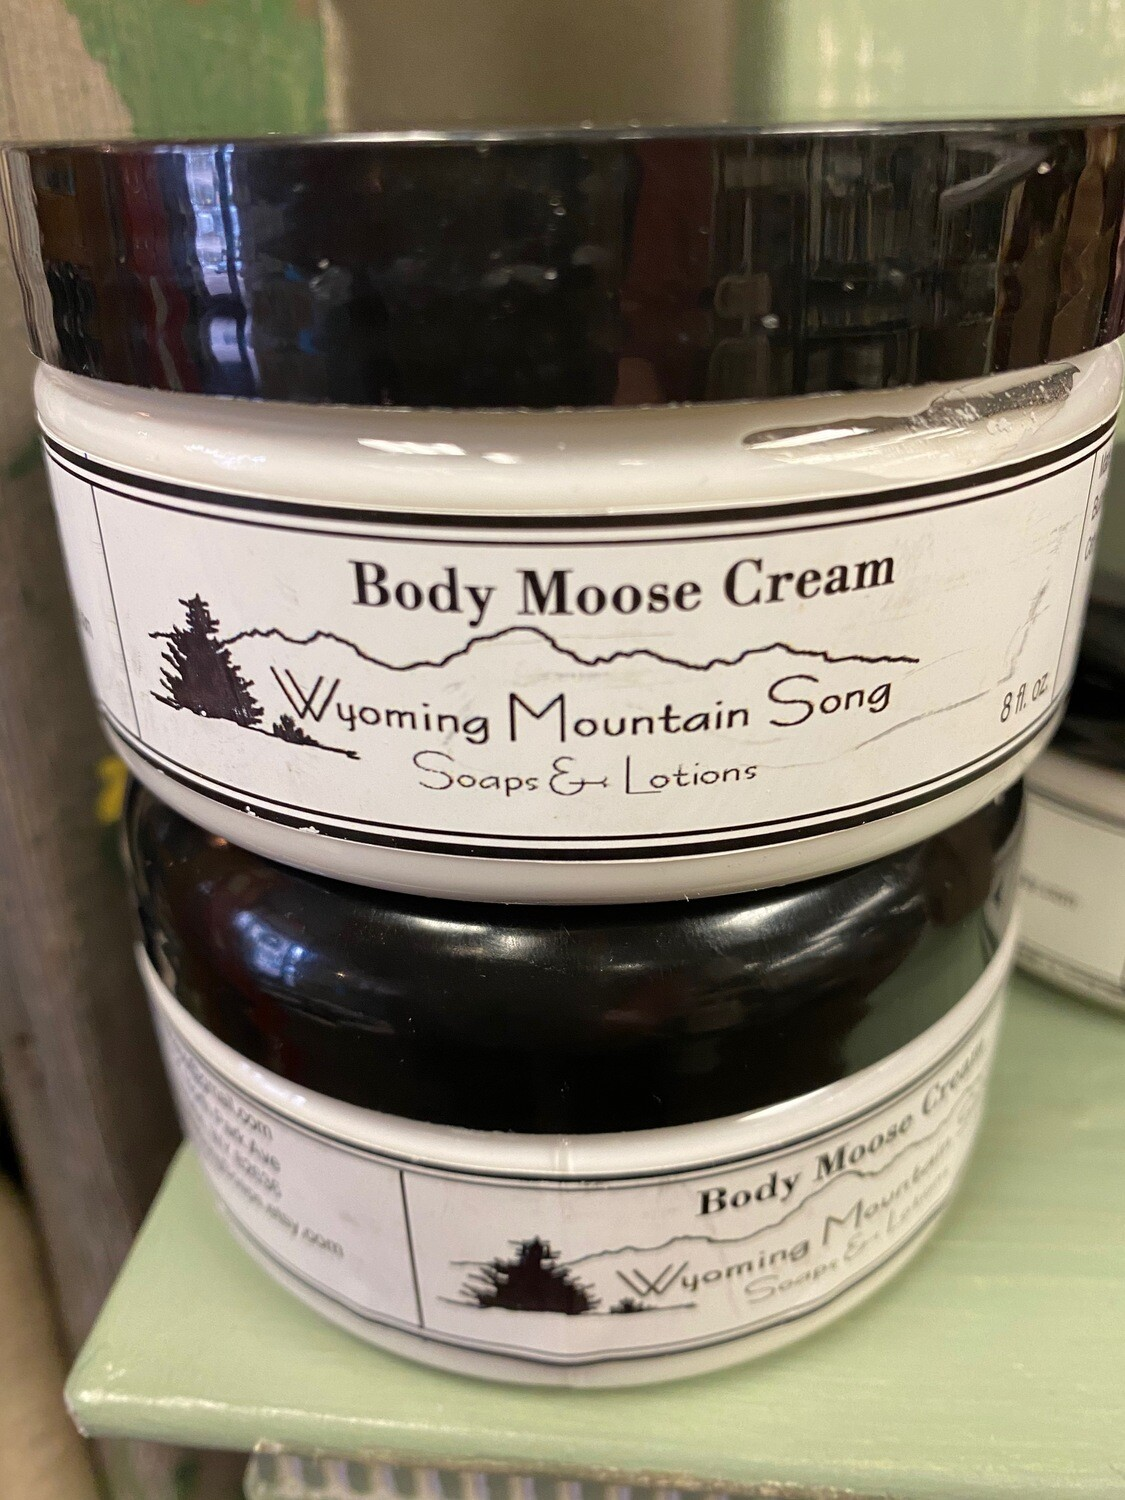 Wyoming Mountain Song/Body Moose Cream/scents in options